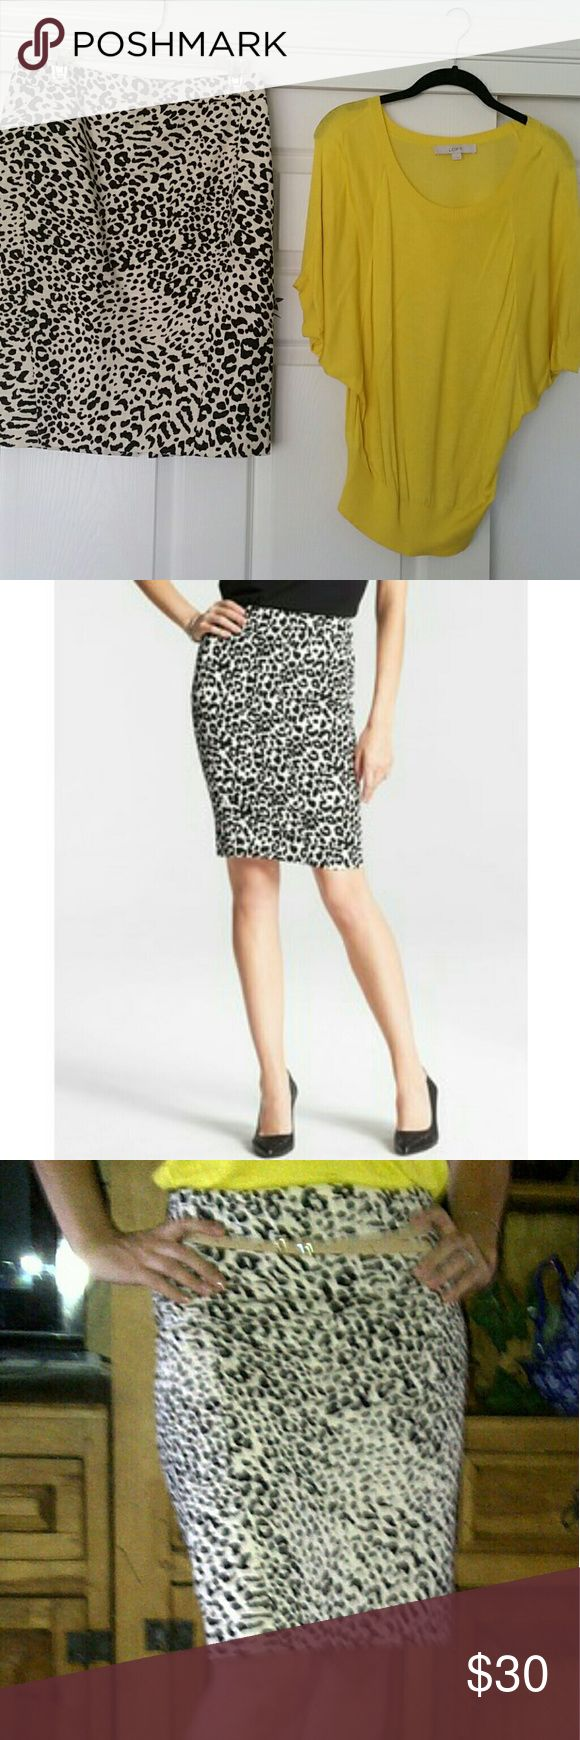 Sexy Loft leopard pencil skirt and blouse bundle! Like new Loft pencil skirt sz 6 with Loft shirt sz S. Both like new. Actual outfit pictured. LOFT Skirts Pencil